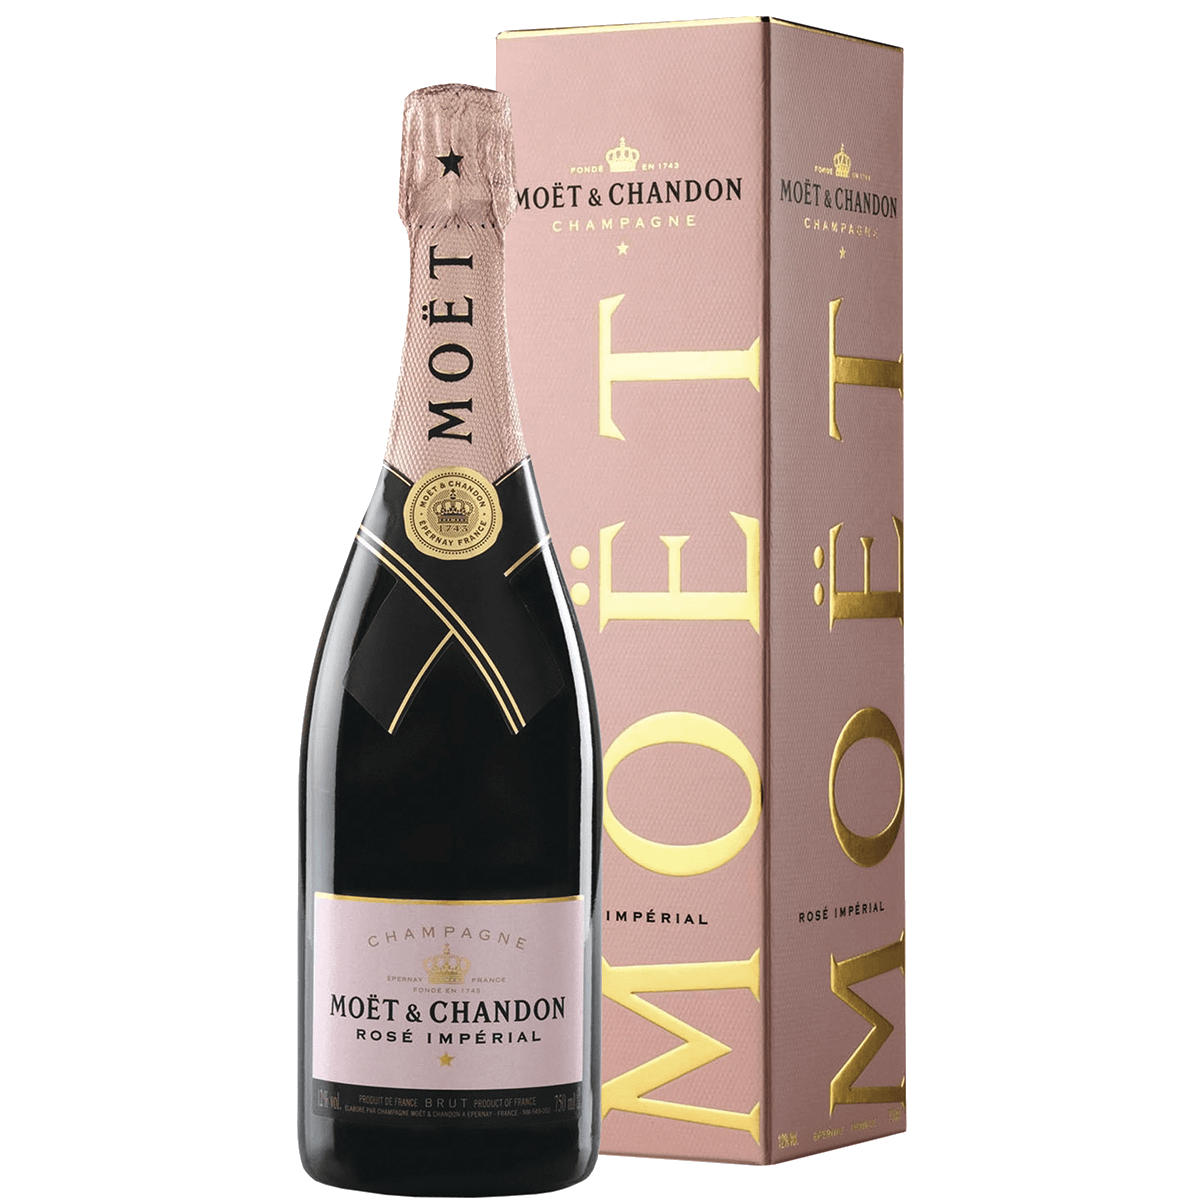 Шампанское Moët & Chandon Brut Imperial Rose, 0.75 л.